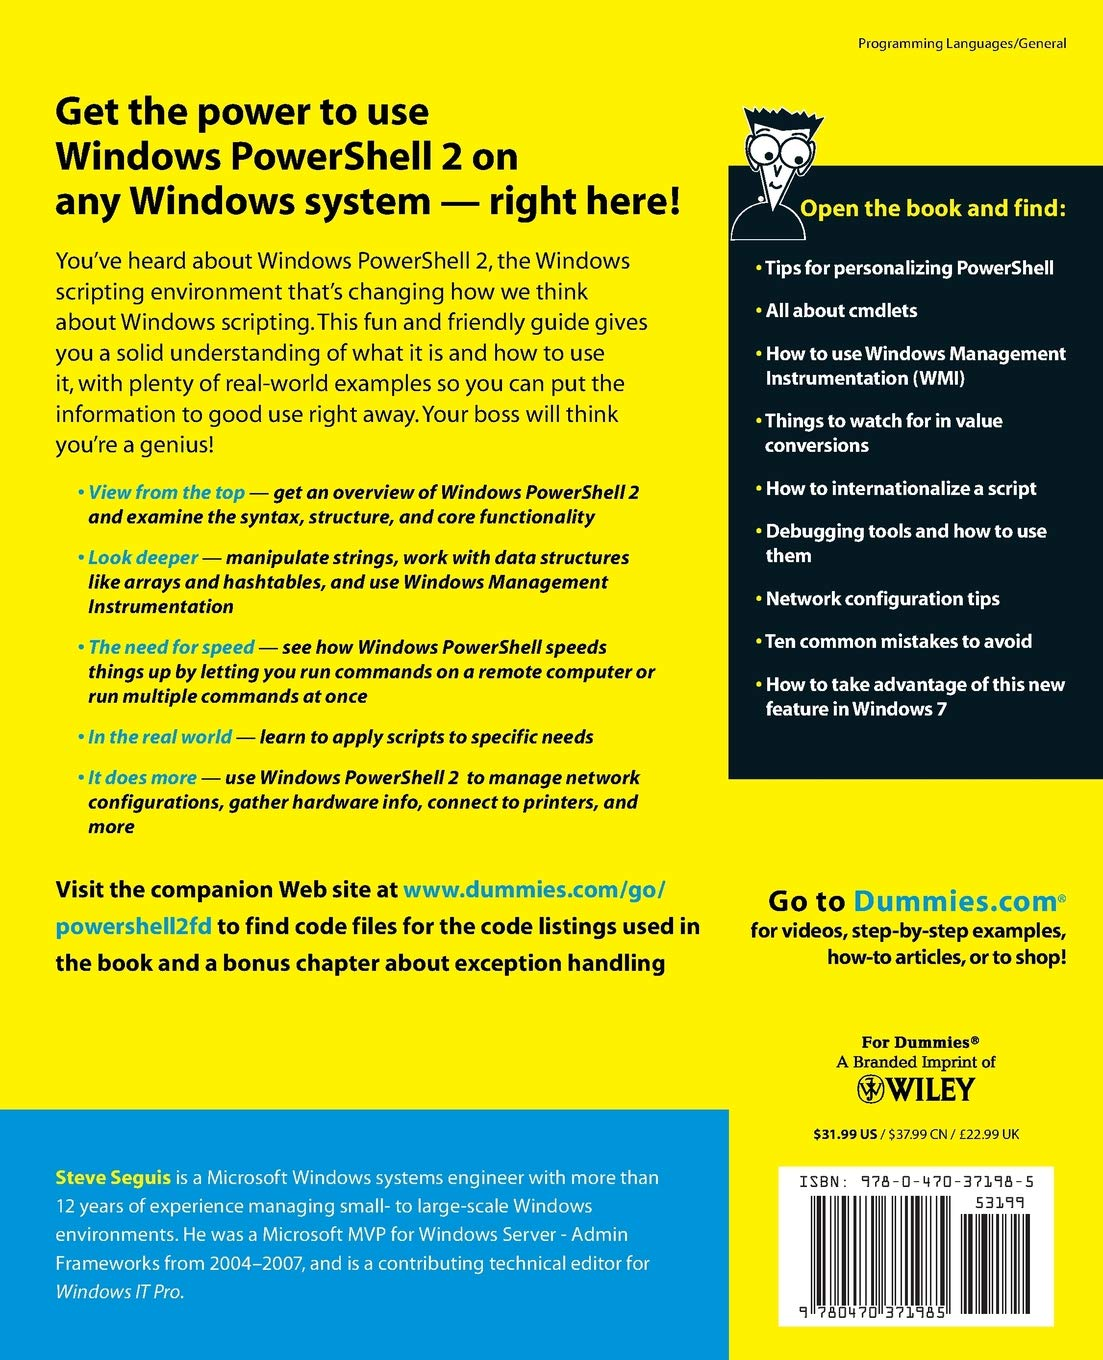 Windows PowerShell 2 for Dummies: Amazon co uk: Steve Seguis